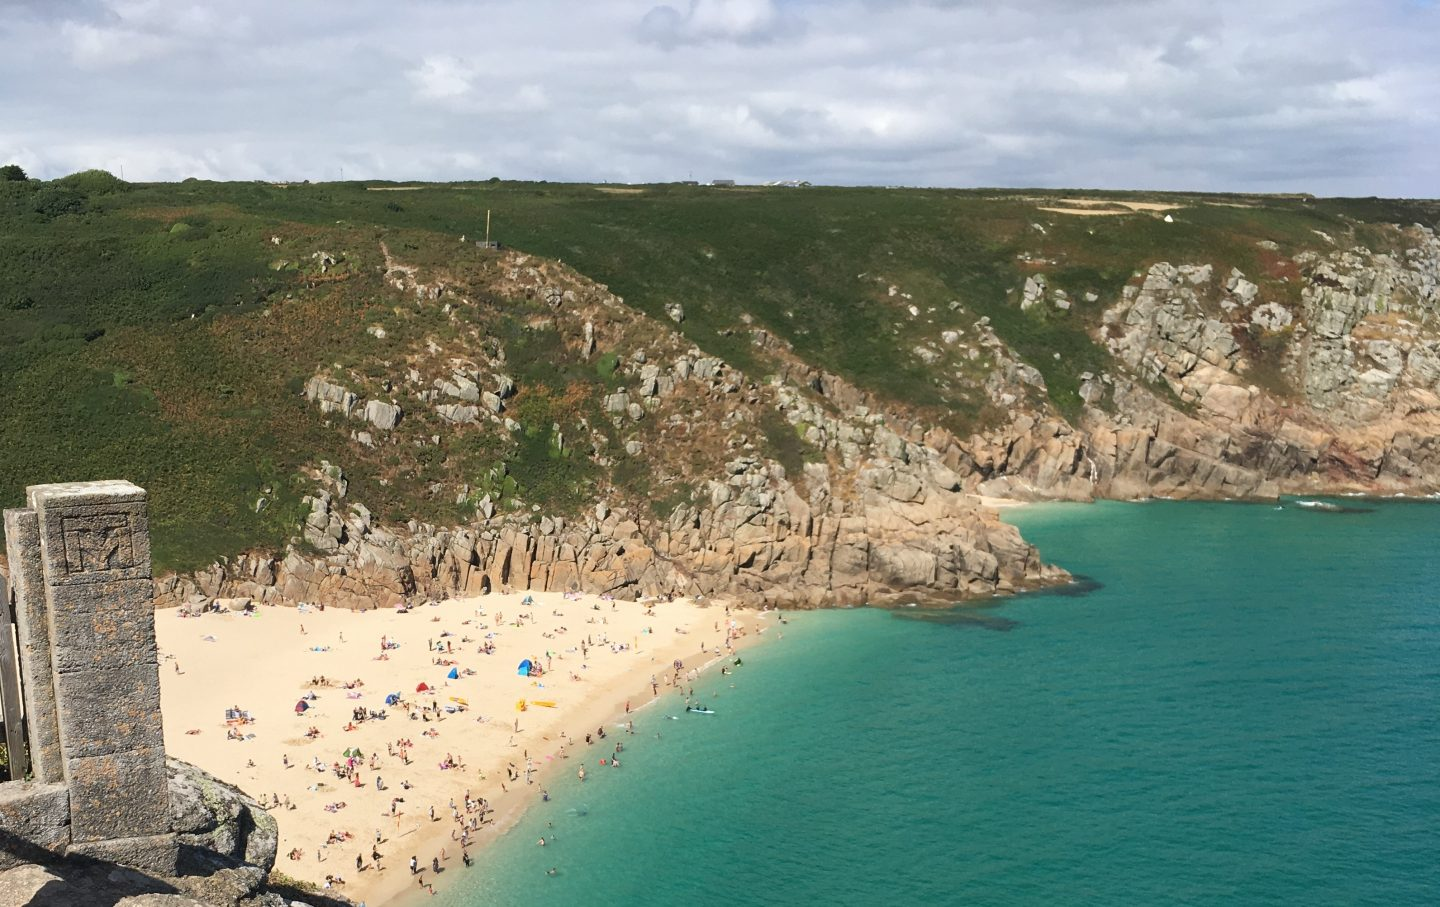 The view of Porthcurno and the Atlantic Ocean from the Minack Theatre